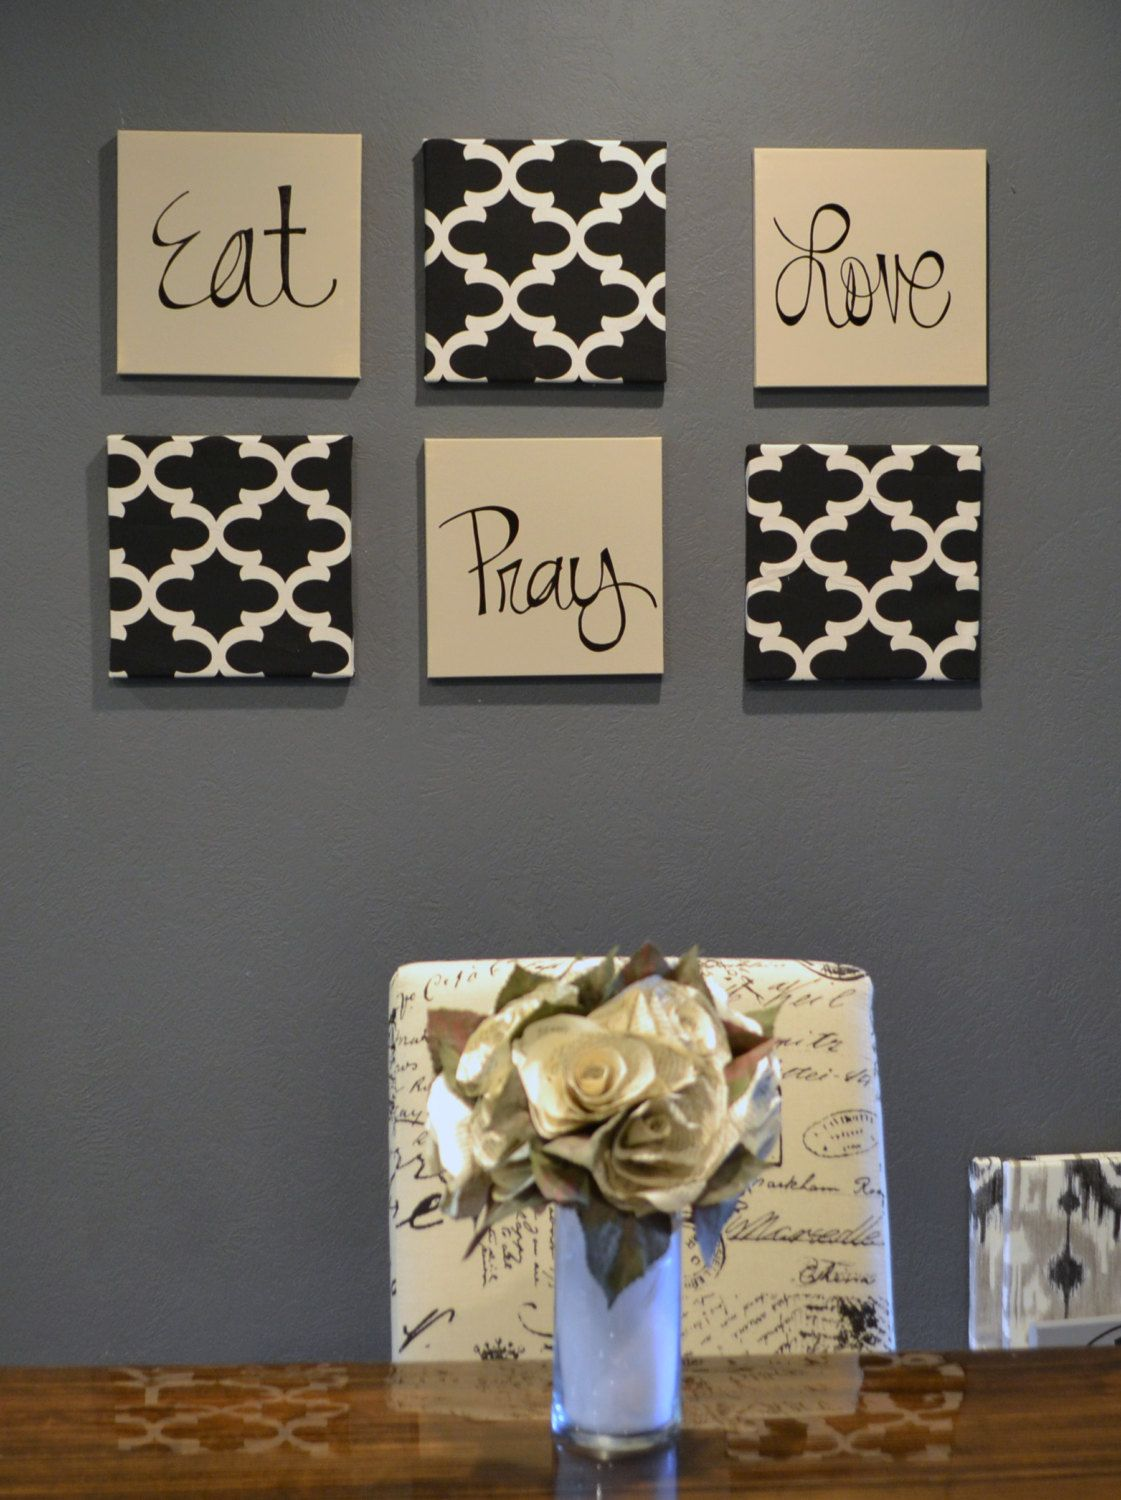 Perfect Eat Pray Love Wall Art Pack Of 6 Canvas Wall Hangings Hand Painted Fabric  Upholstered Dining Room Decor Modern Chic Black Beige Moroccan By  GoldenPaisley On ...